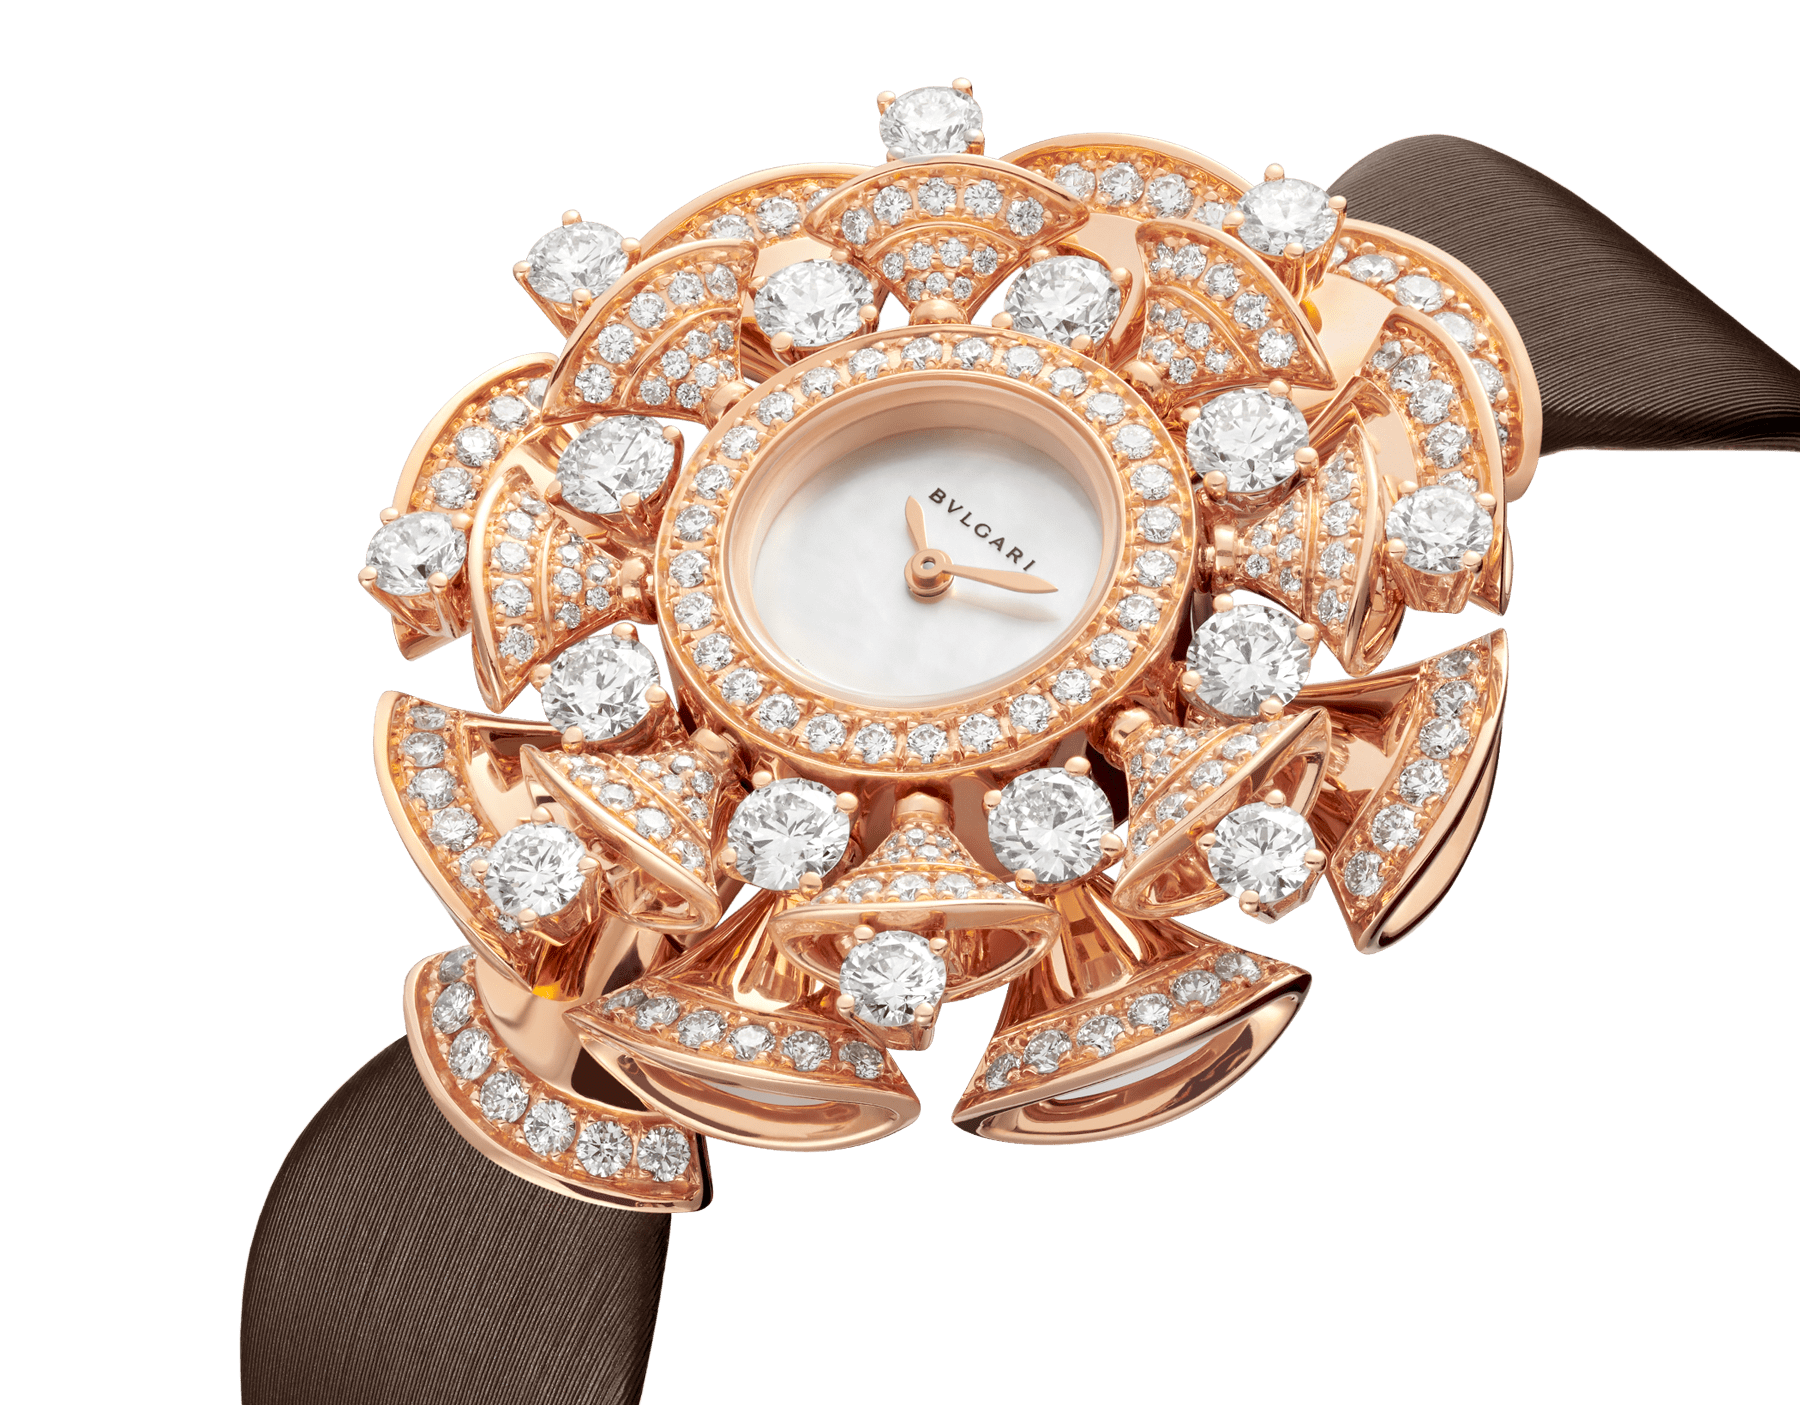 DVAS' DREAM watch with 18 kt rose gold case set with brilliant-cut diamonds, white mother-of-pearl dial and brown satin bracelet 102546 image 2